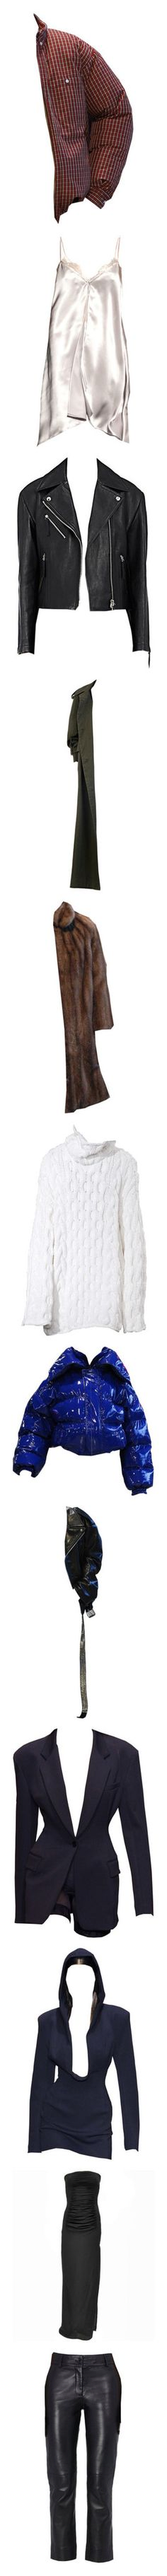 """""""My Edits Pt. 2"""" by maryisnotmyname ❤ liked on Polyvore featuring men's fashion, dresses, tops, shoes, boots, skirts, jackets and coats"""